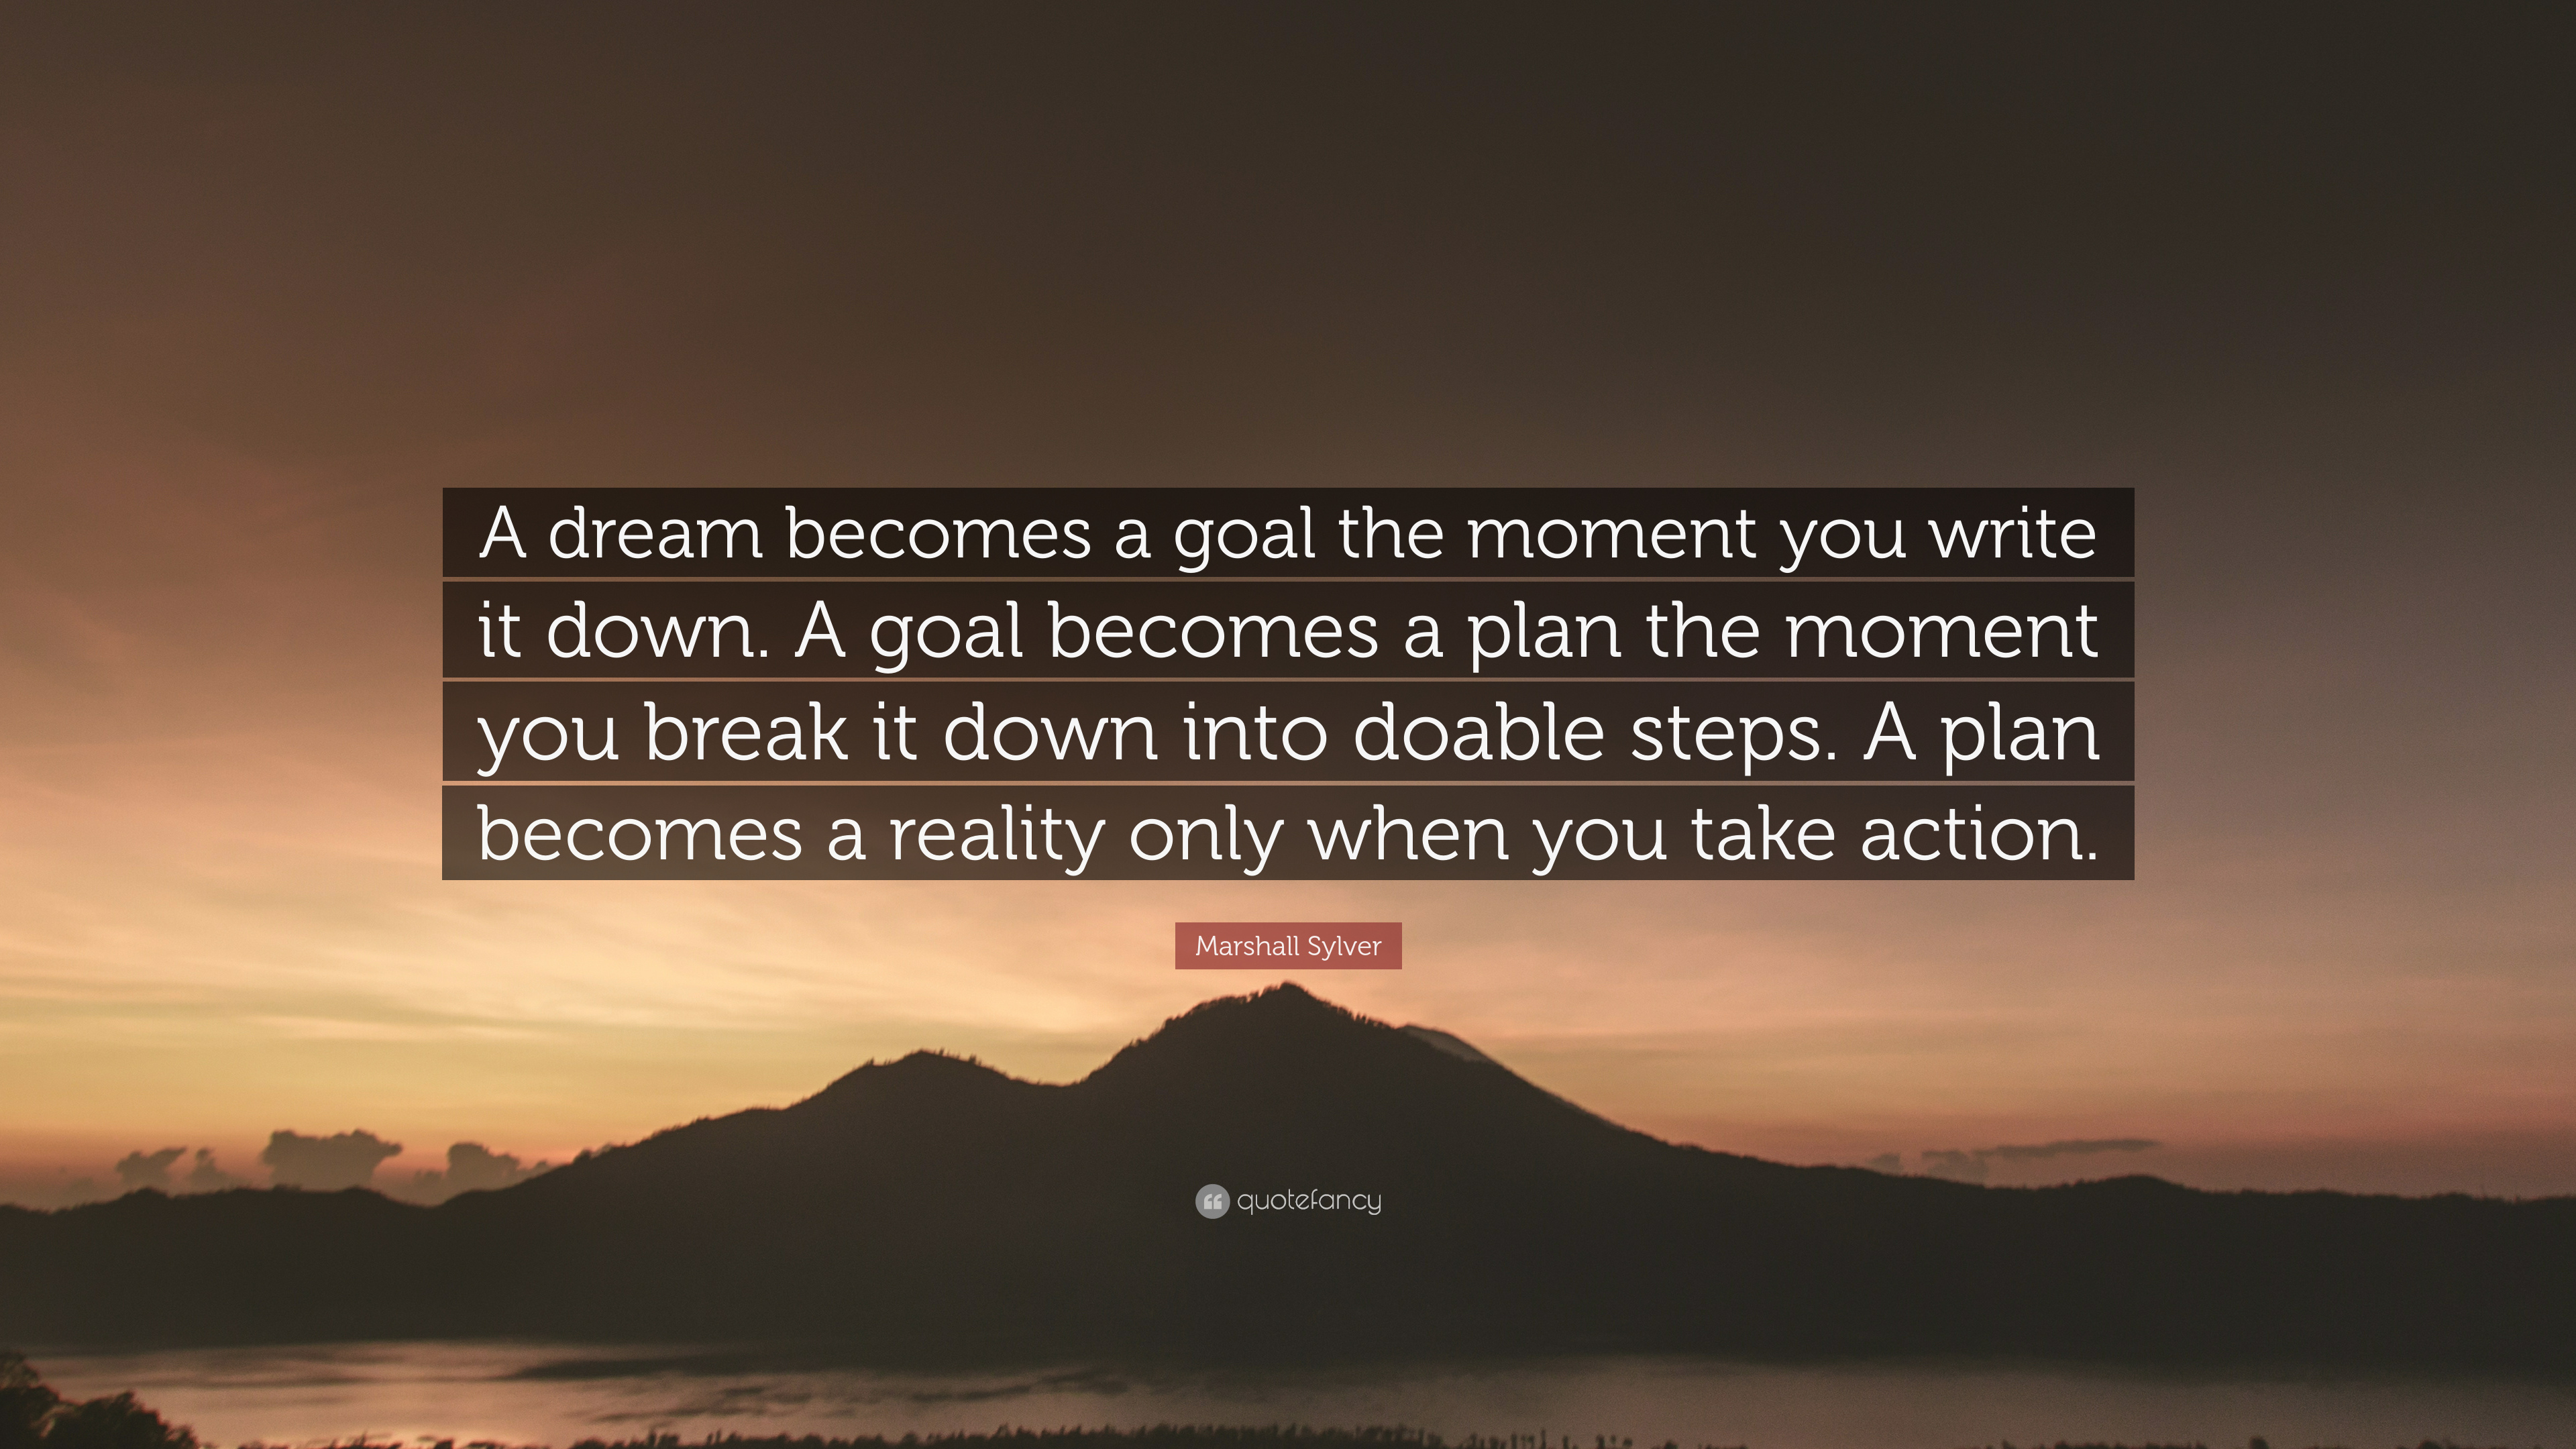 https://quotefancy.com/media/wallpaper/3840x2160/2649098-Marshall-Sylver-Quote-A-dream-becomes-a-goal-the-moment-you-write.jpg